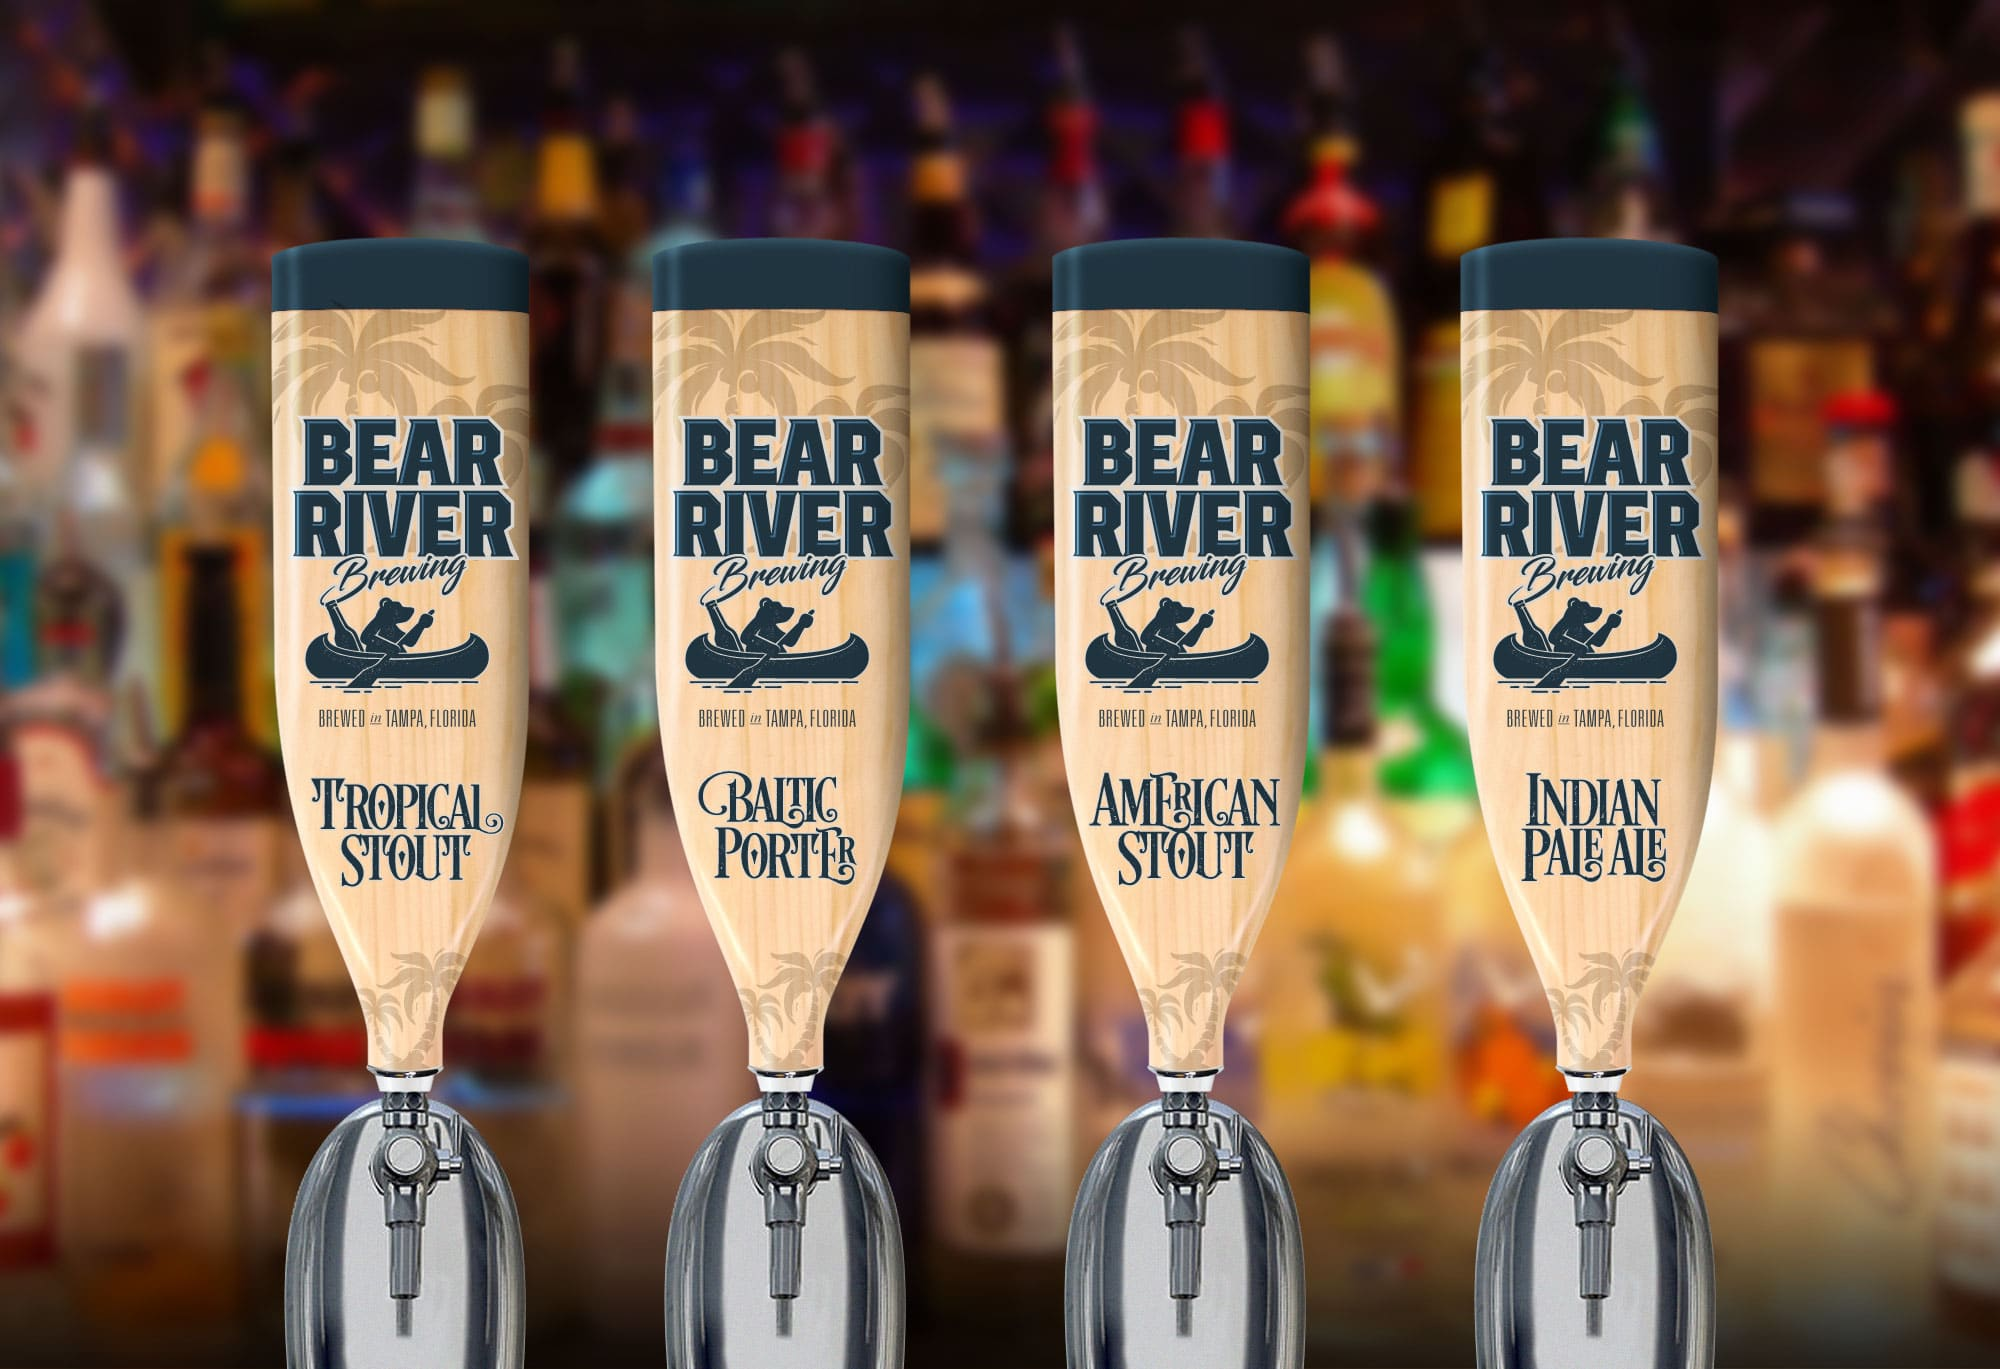 Bear River Brewing branded beer taps